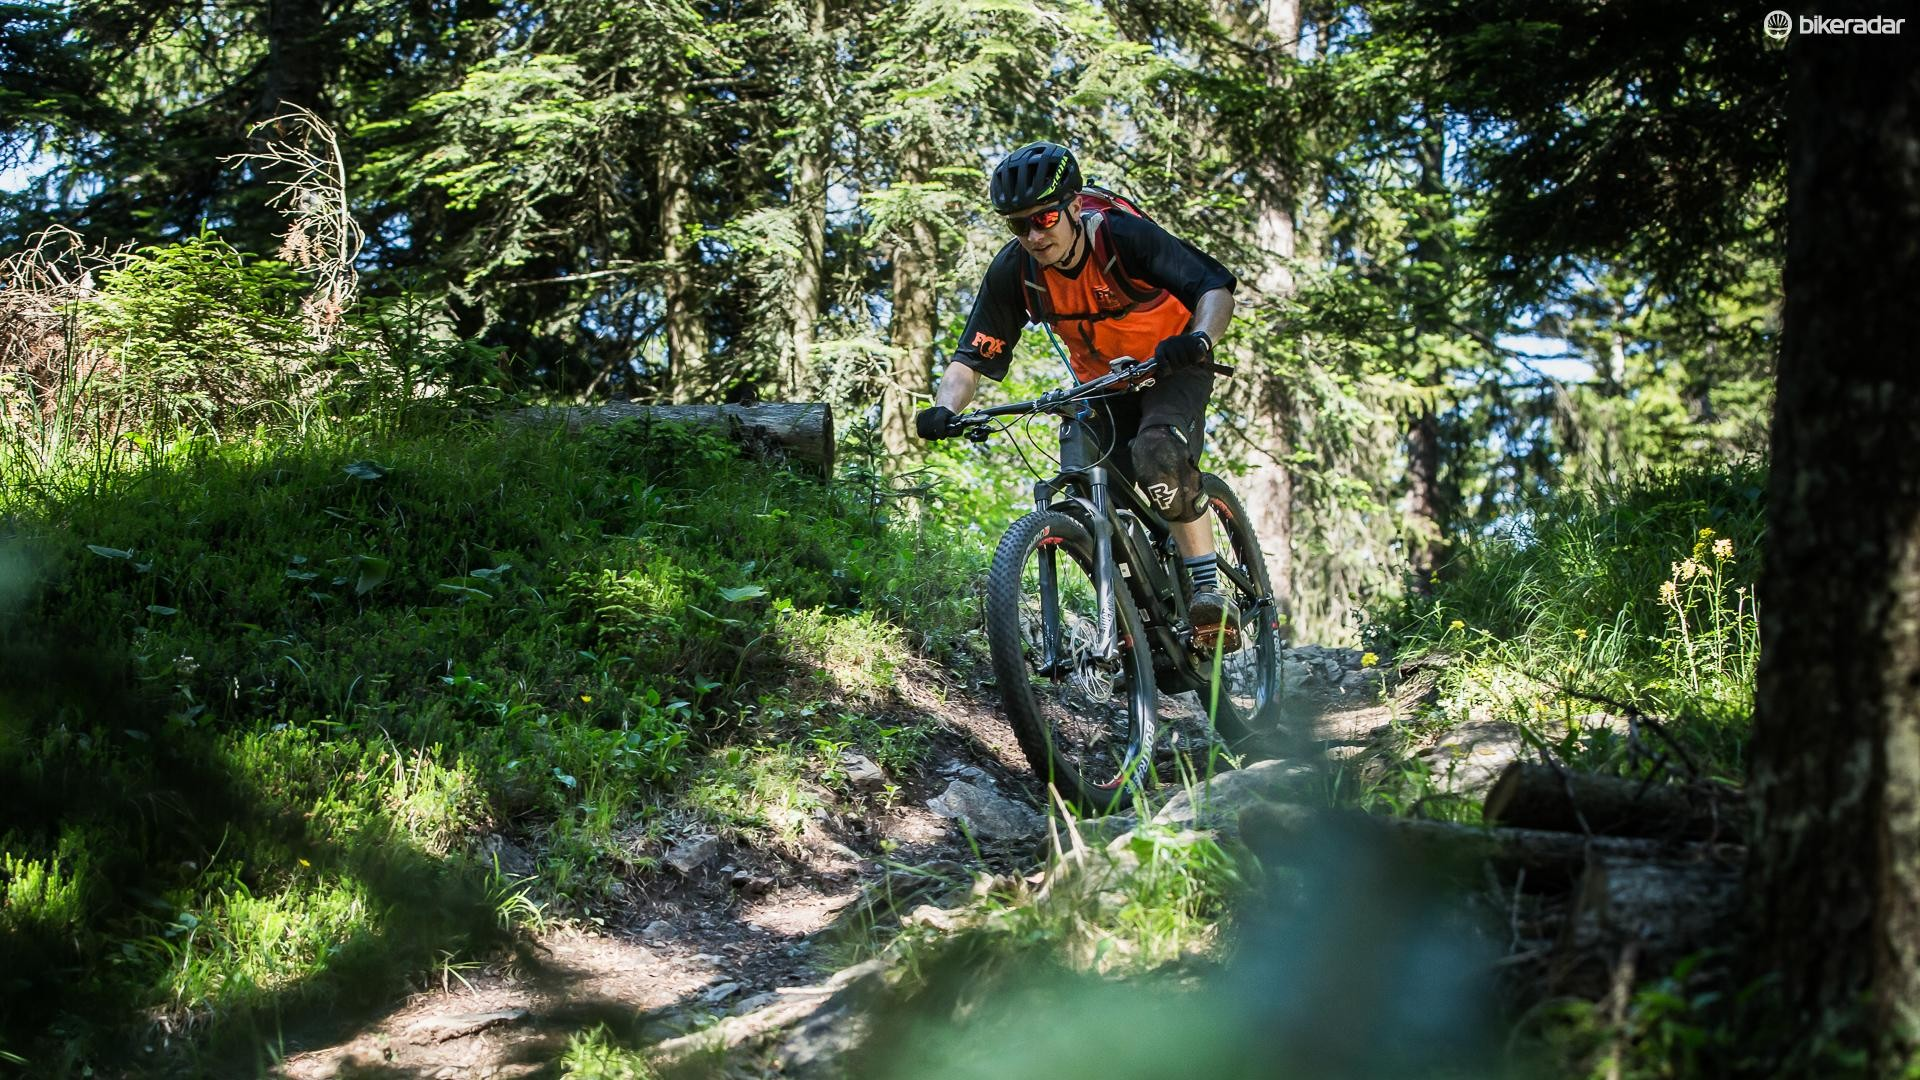 Our test ride took us on a long day out in the Swiss Alps, which would have proved brutal on a regular trail bike